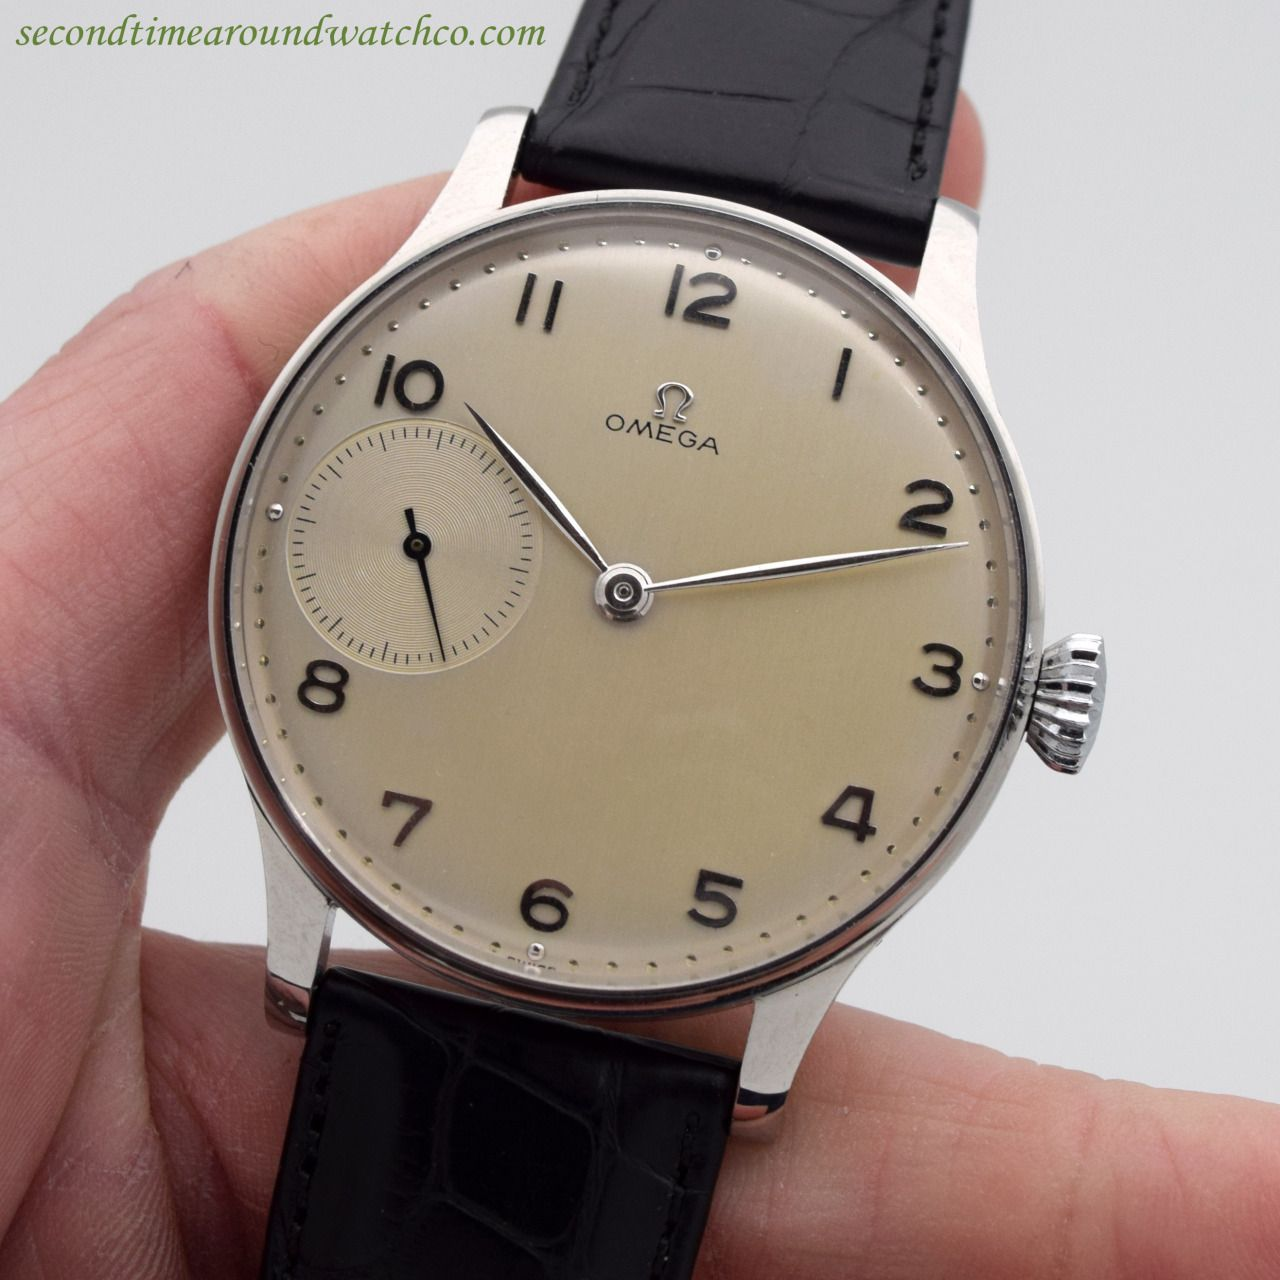 Second Time Around Watch Company Vintage Omega Vintage Watches Watches For Men